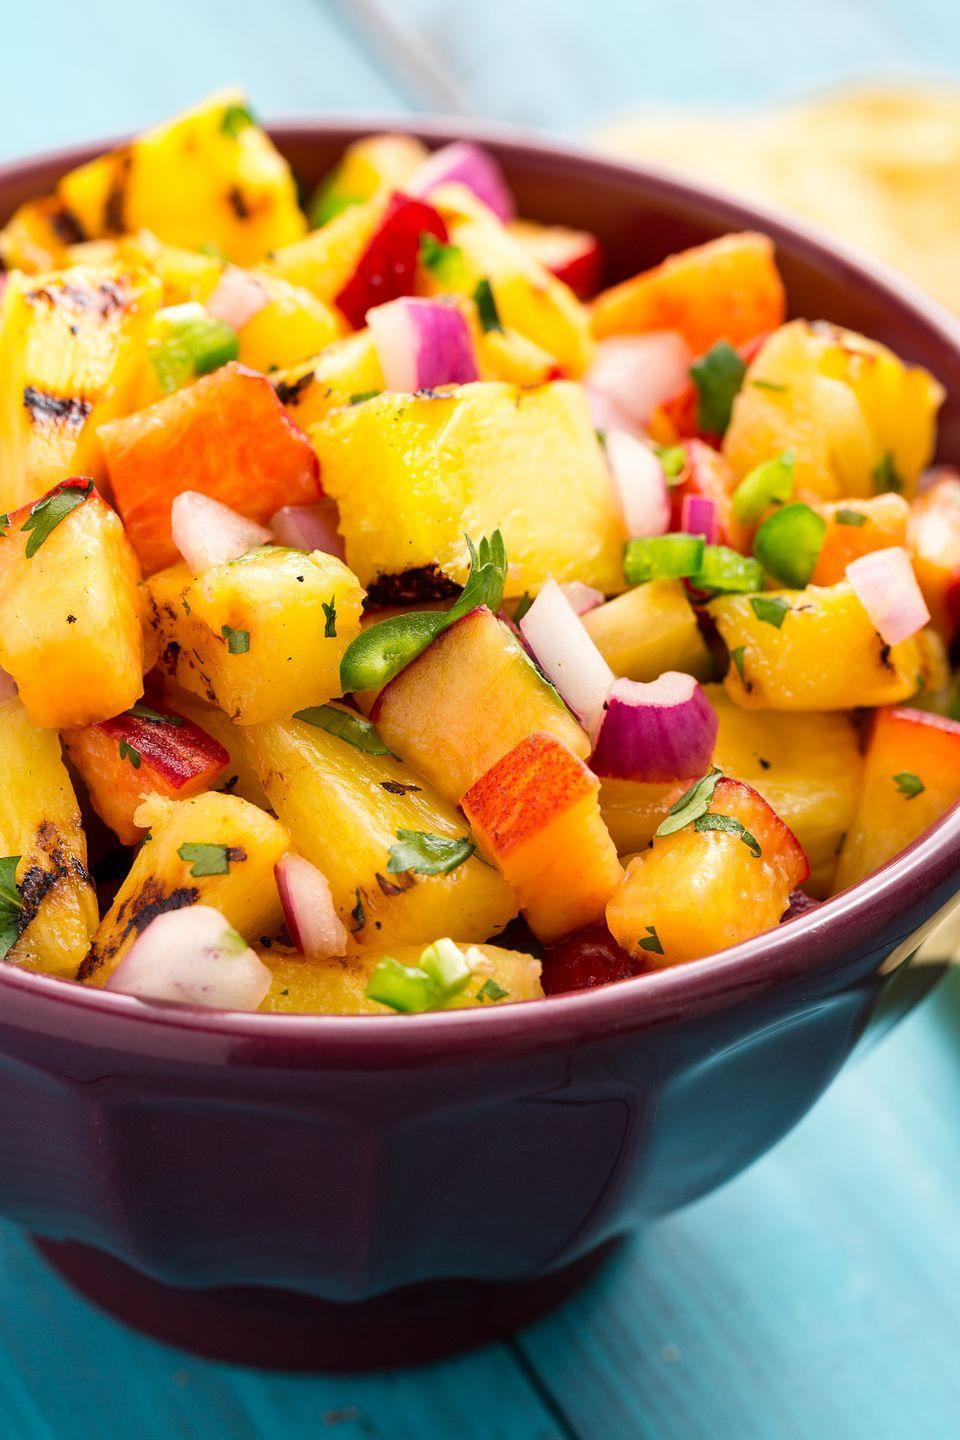 """<p>Summer BBQs just got fancy AF.</p><p>Get the recipe from <a href=""""https://www.delish.com/cooking/recipes/a53020/pineapple-salsa-in-pineapple-recipe/"""" rel=""""nofollow noopener"""" target=""""_blank"""" data-ylk=""""slk:Delish"""" class=""""link rapid-noclick-resp"""">Delish</a>.</p>"""